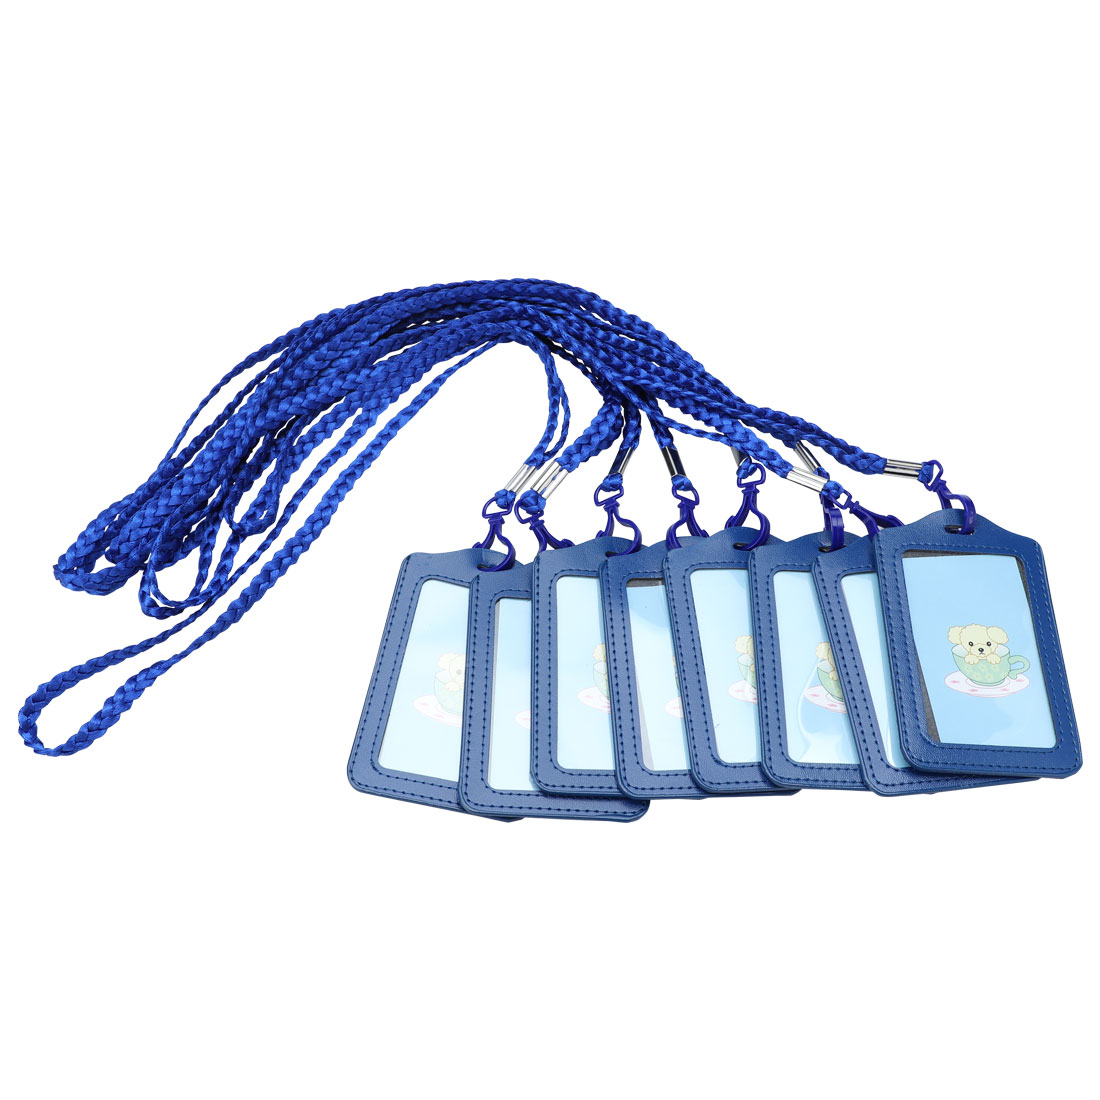 Office School Vertical Lanyard Name ID Card Tag Badge Holder Dark Blue 8pcs